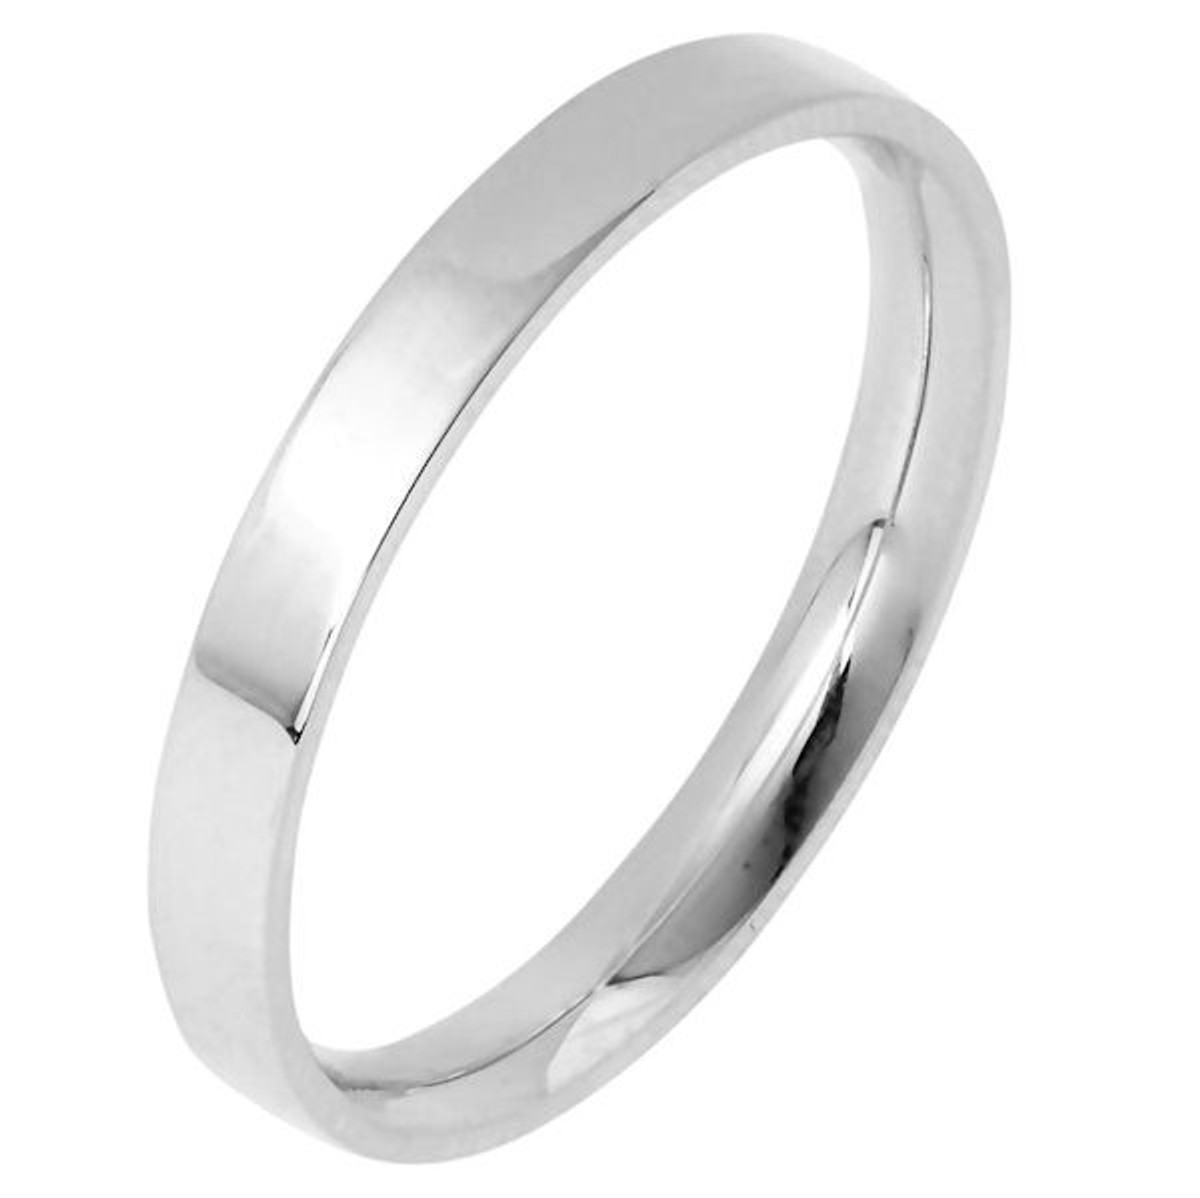 White Gold 3.0 mm Wide Flat Comfort Fit Wedding Band